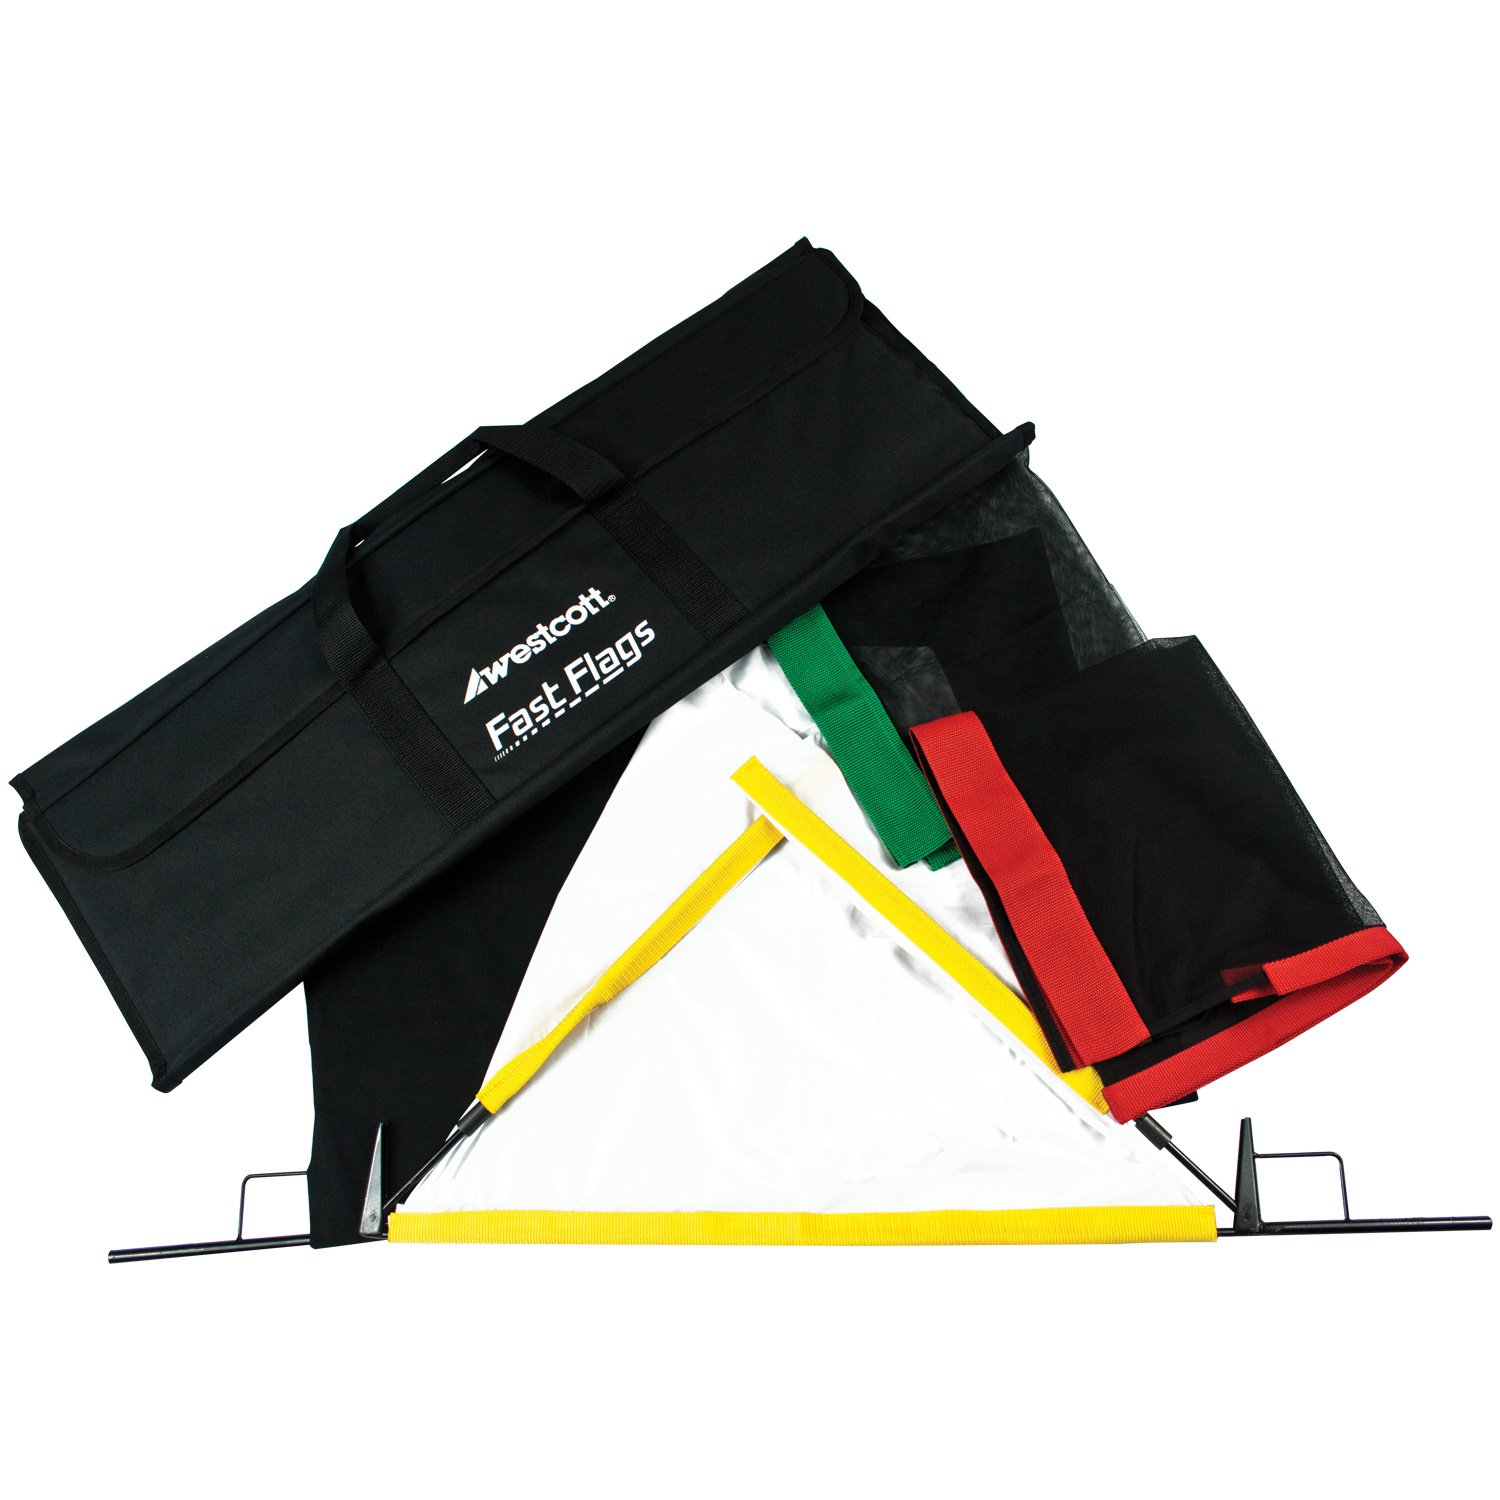 Fast Flags Kit (18-in. x 24-in.)